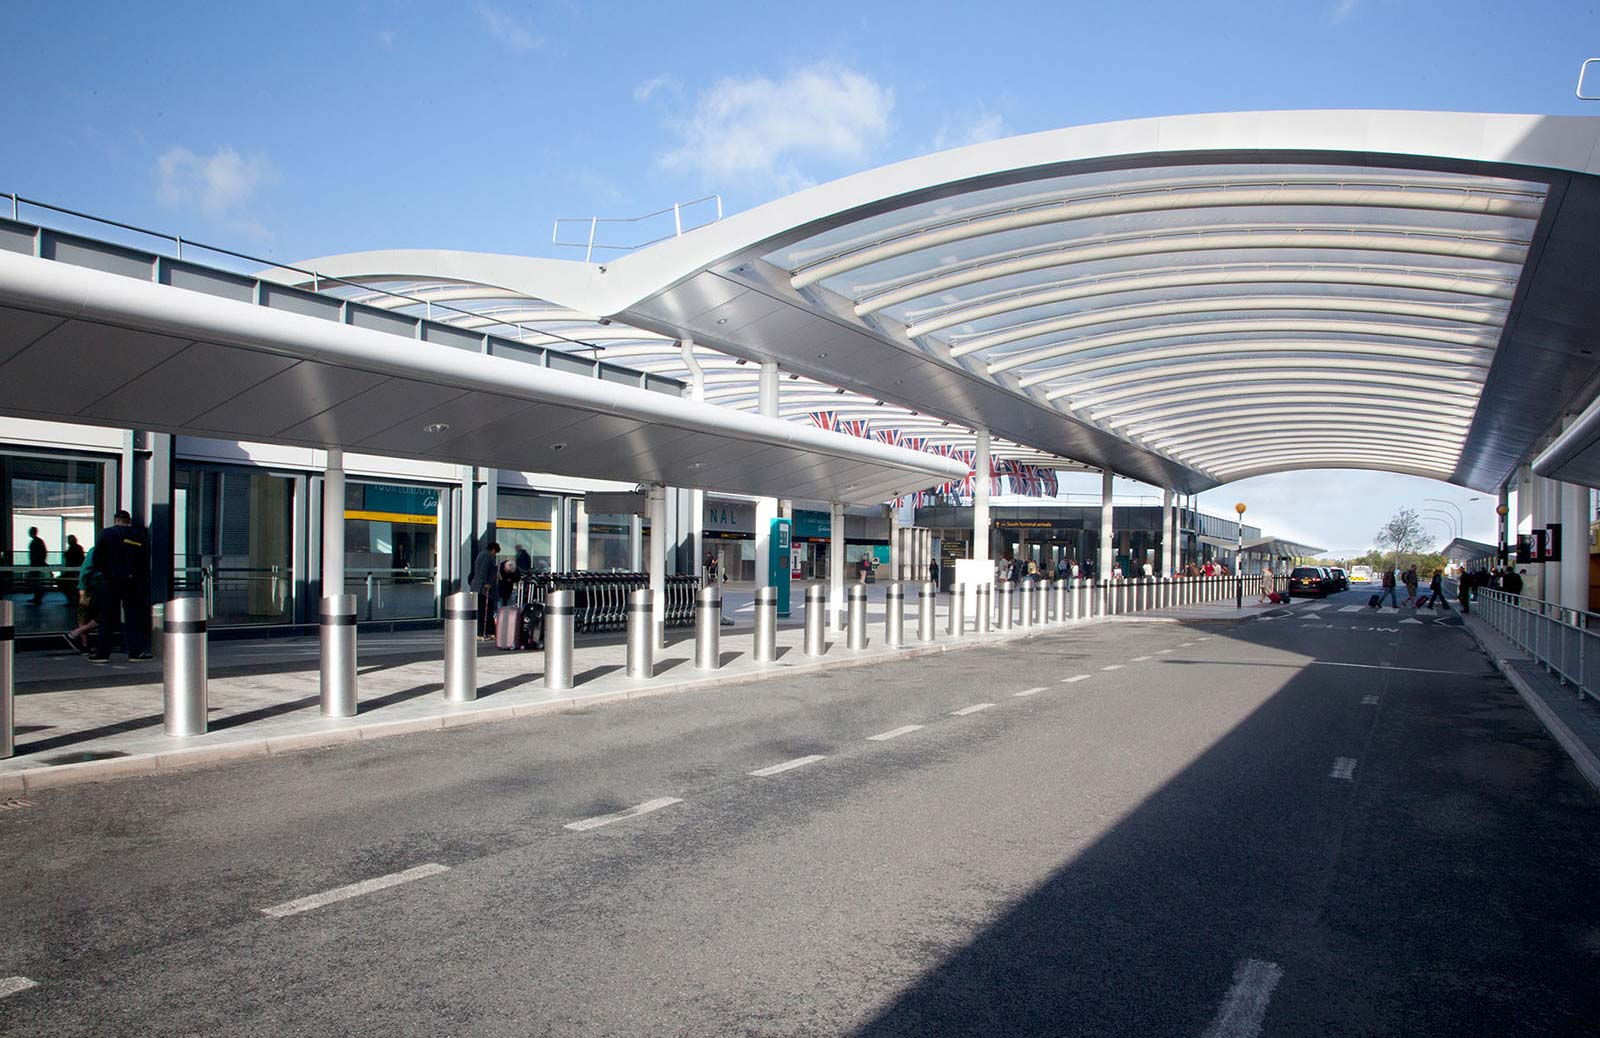 gatwick airport canopy outside